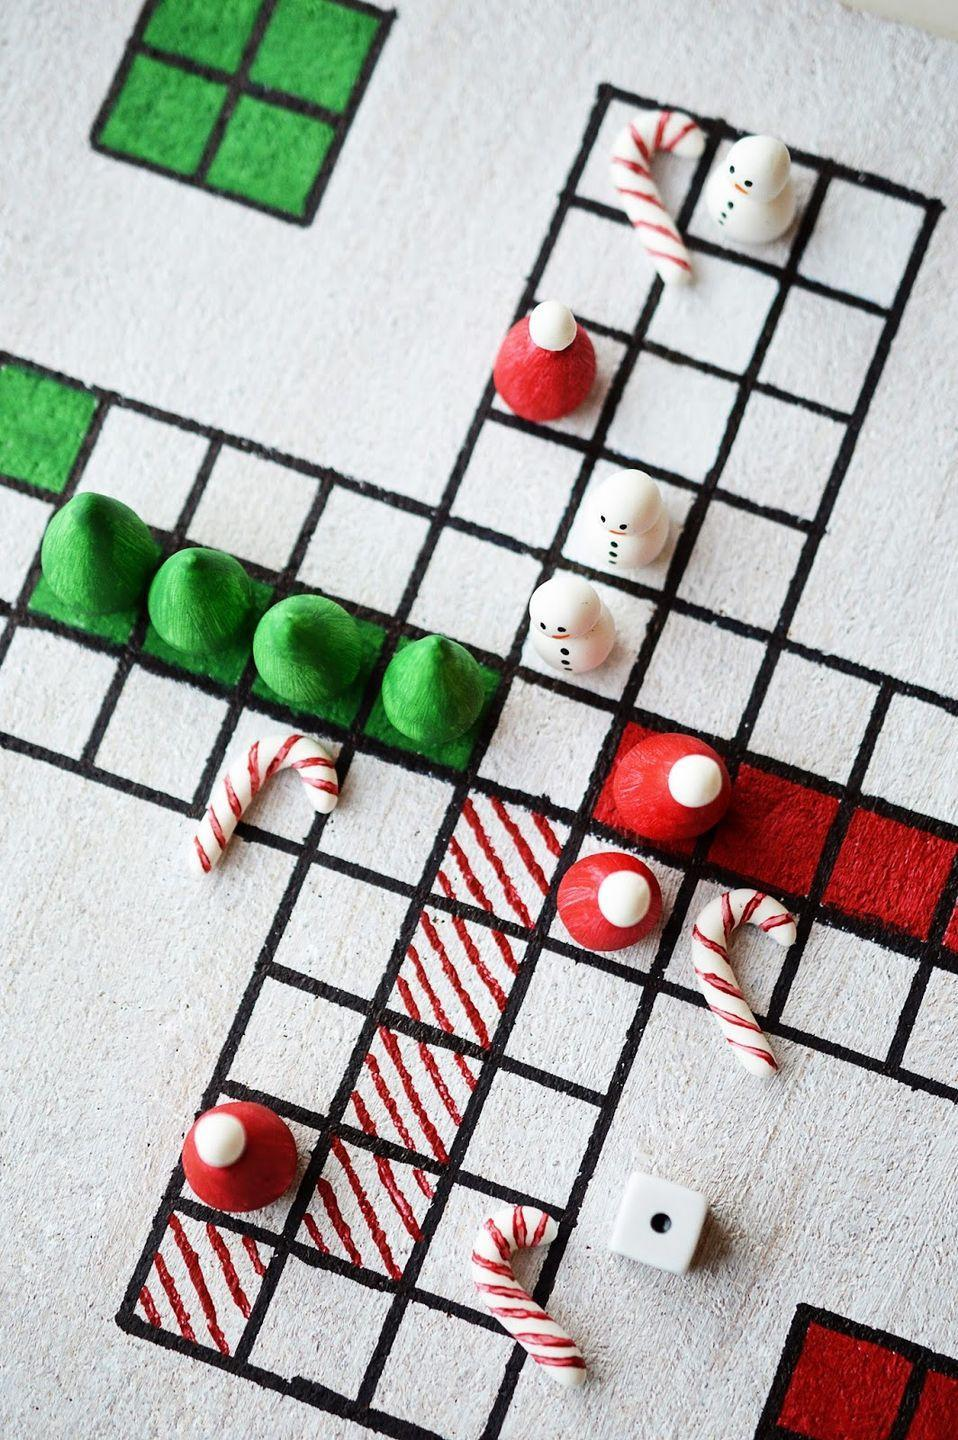 """<p>This super crafty blogger made her own clay game pieces and cork board for this festive spin on the classic board game <a href=""""https://www.amazon.com/Hasbro-390095-Sorry-Amazon-Exclusive/dp/B00000IWD0?tag=syn-yahoo-20&ascsubtag=%5Bartid%7C10055.g.2725%5Bsrc%7Cyahoo-us"""" rel=""""nofollow noopener"""" target=""""_blank"""" data-ylk=""""slk:Sorry!"""" class=""""link rapid-noclick-resp""""><em>Sorry!</em></a>. If you don't have the time or skills to do the same, use <a href=""""https://www.amazon.com/HERSHEYS-Holiday-Chocolate-Assortment-Cookies/dp/B01JRIZ258/?tag=syn-yahoo-20&ascsubtag=%5Bartid%7C10055.g.2725%5Bsrc%7Cyahoo-us"""" rel=""""nofollow noopener"""" target=""""_blank"""" data-ylk=""""slk:Christmas Hershey's Kisses"""" class=""""link rapid-noclick-resp"""">Christmas Hershey's Kisses</a> on a regulation board to give it a little more holiday spirit. The winner gets to eat their team (and maybe the opposing ones, too). </p><p><em><a href=""""http://mottesblog.blogspot.com/2015/12/diy-christmas-board-game.html"""" rel=""""nofollow noopener"""" target=""""_blank"""" data-ylk=""""slk:Get the tutorial at Motte »"""" class=""""link rapid-noclick-resp"""">Get the tutorial at Motte »</a></em><br></p>"""